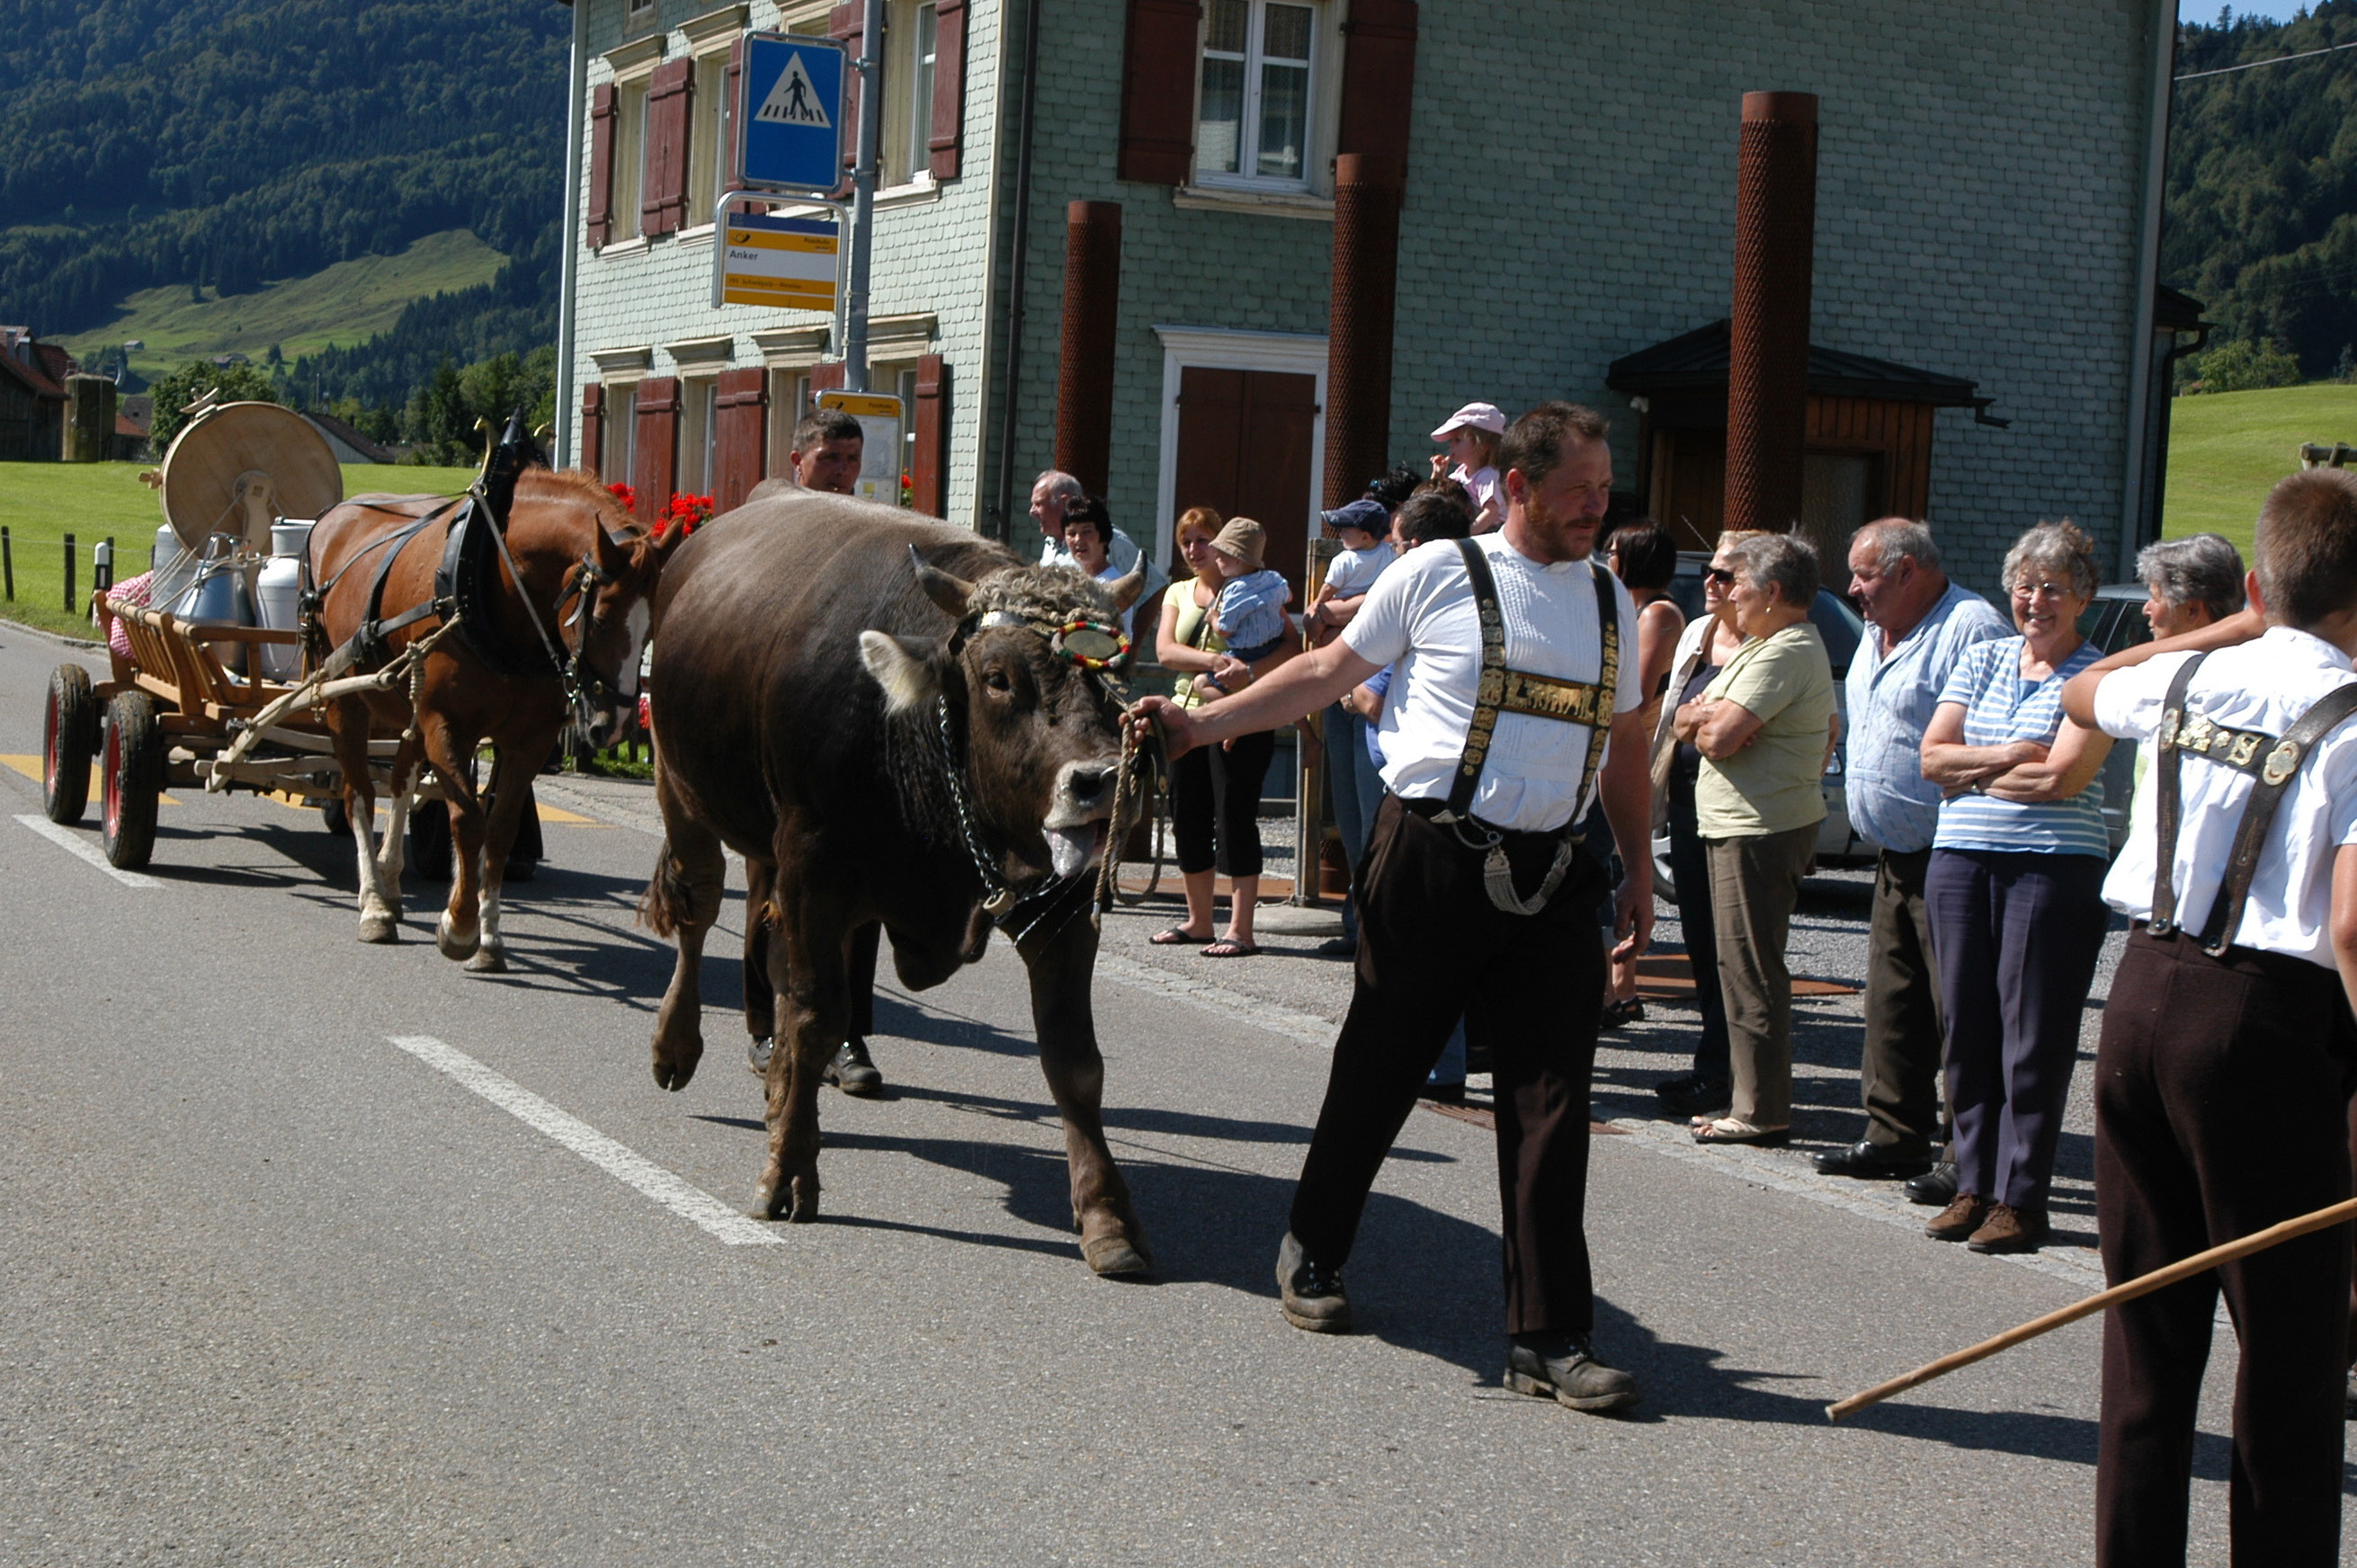 Descent, Urnäsch: A farmer leading a bull by its halter; behind him a cart full of tools for the daily work on the alpine pastures © Hans Hürlemann, Urnäsch, 2011